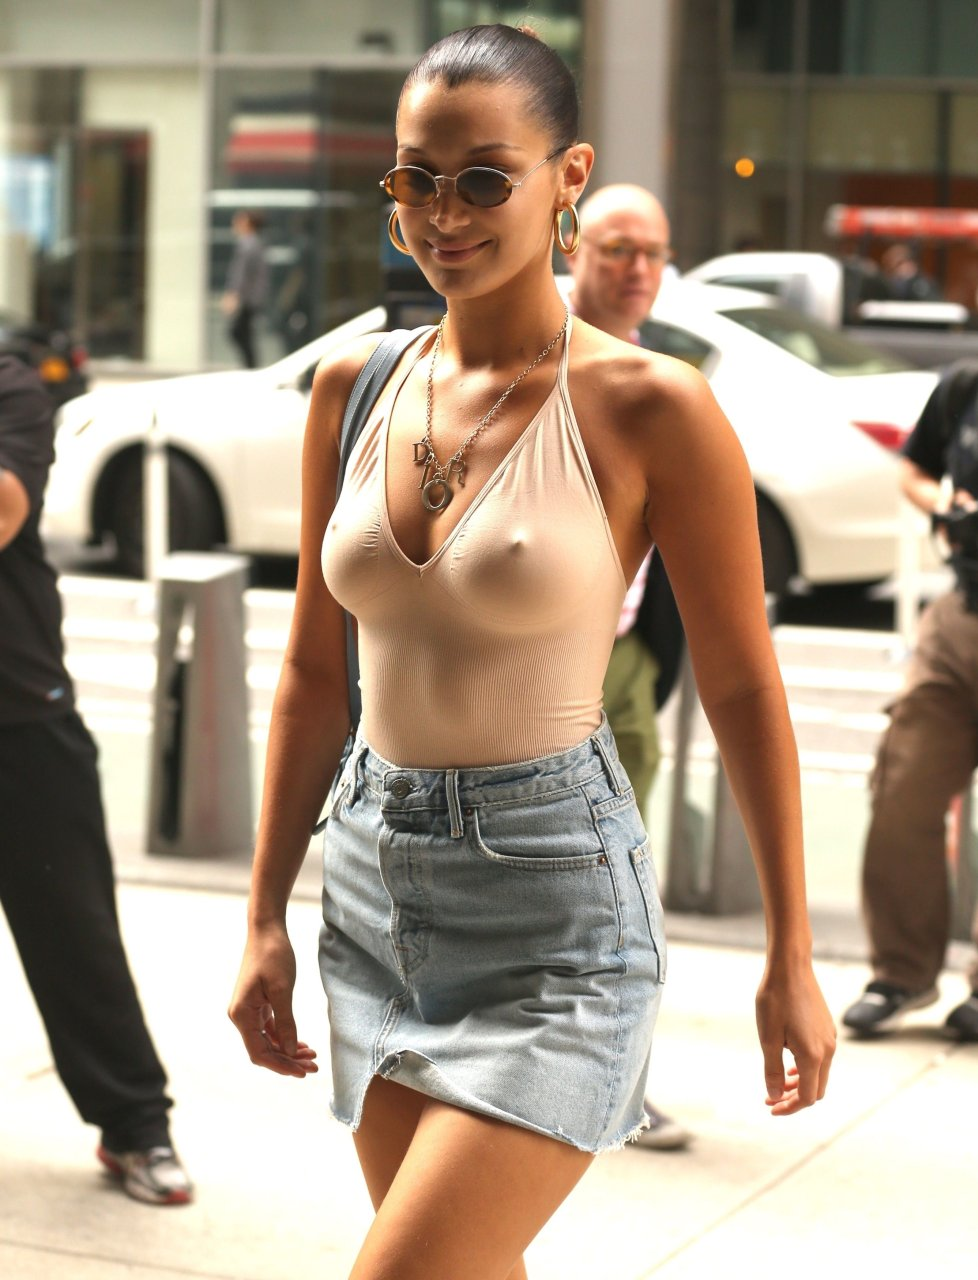 Candid No Bra Tits Bouncing In Her Shirt